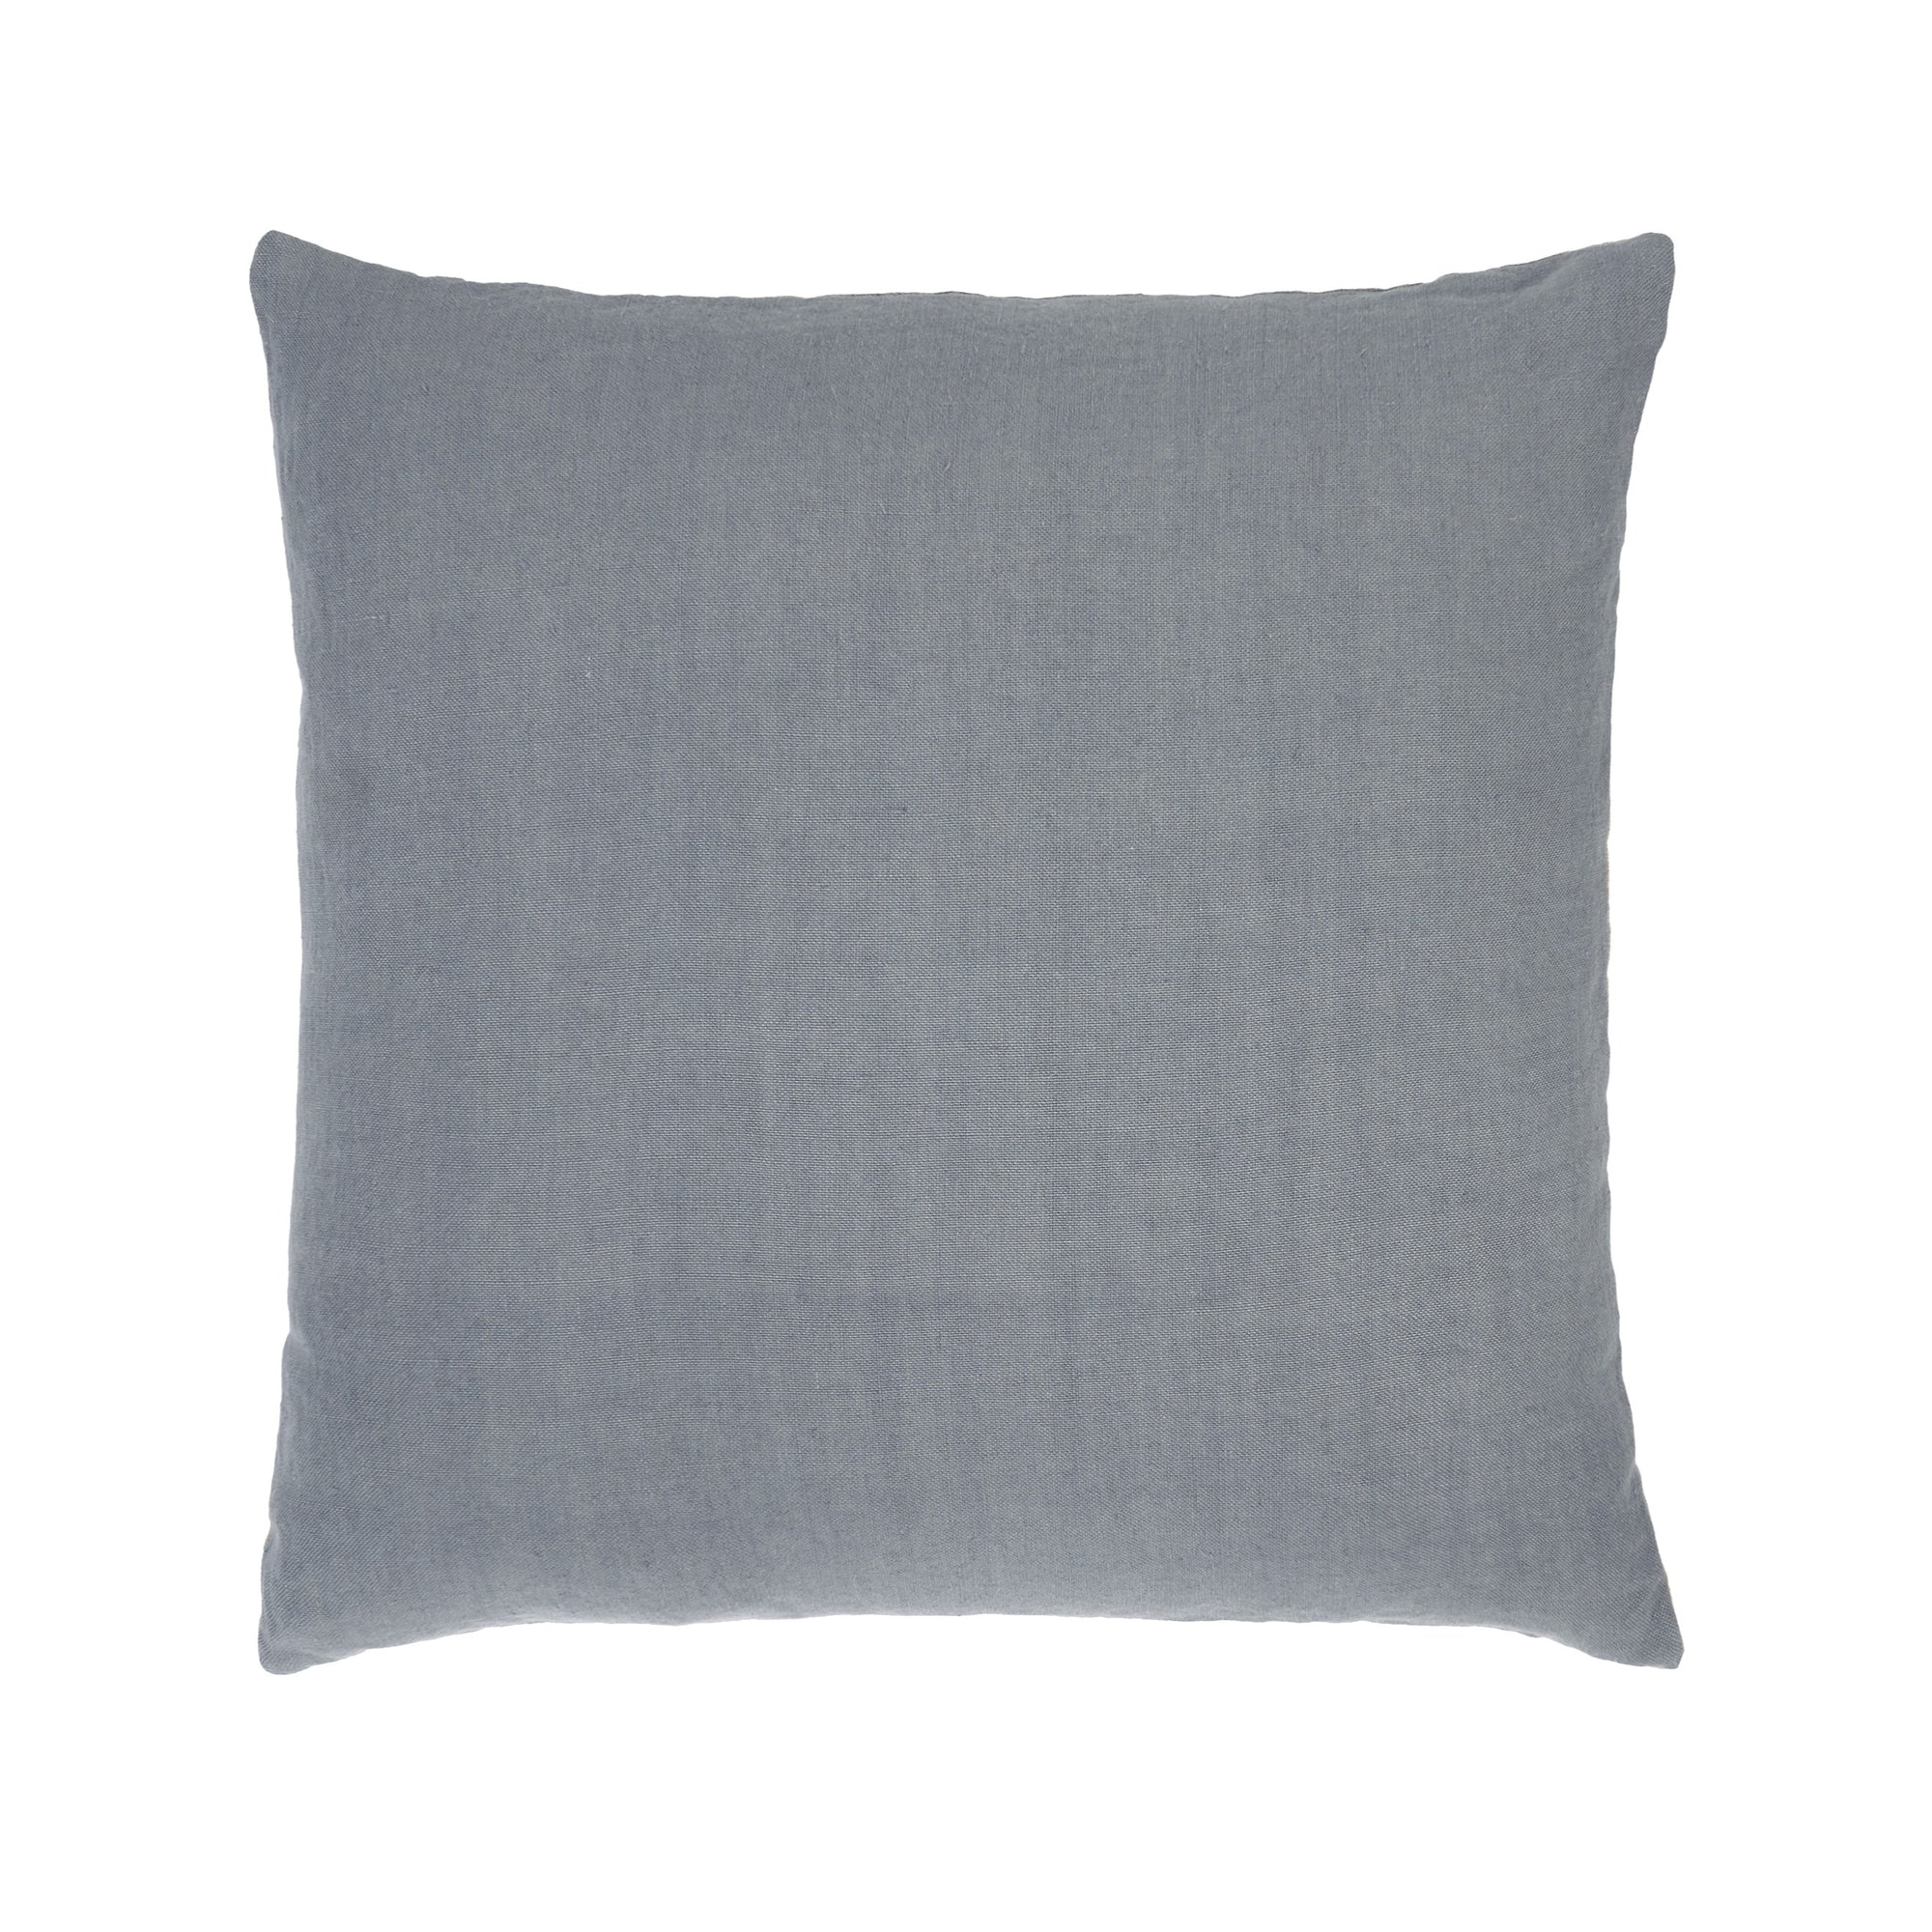 Silver Linen Sauvage cushion